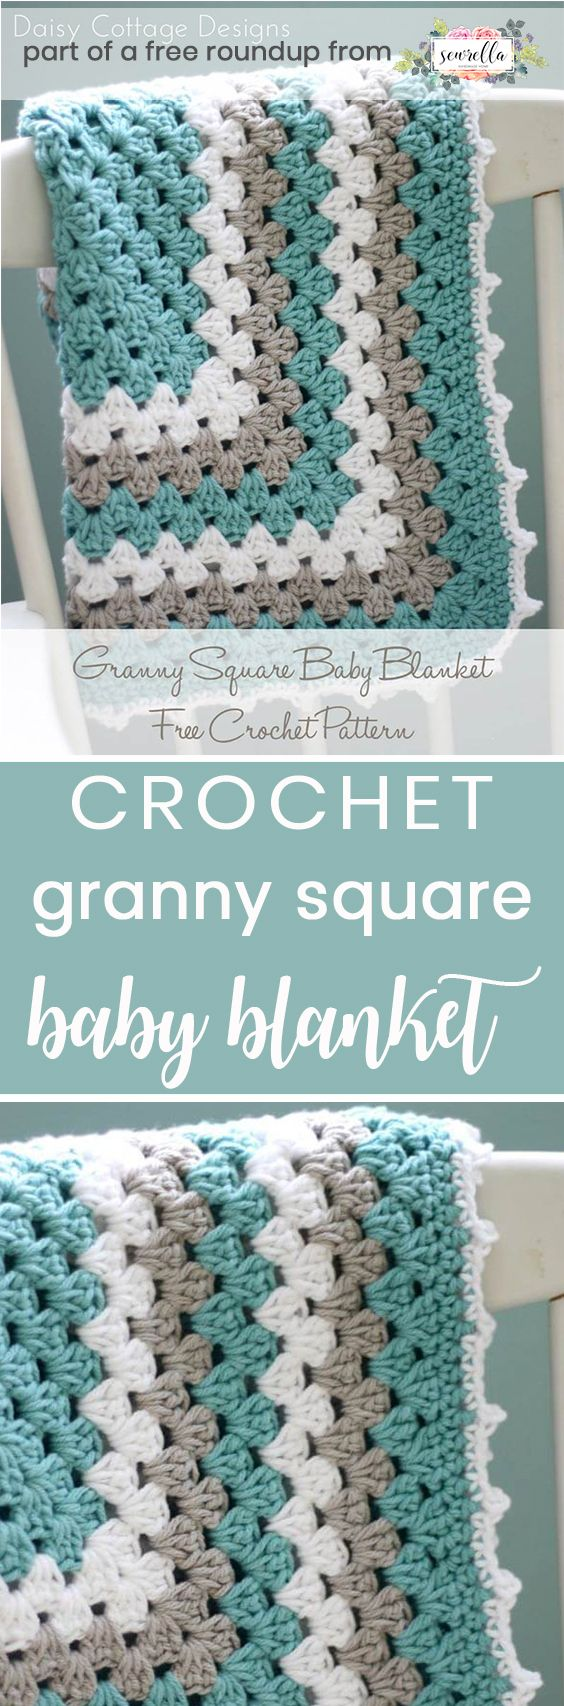 Crochet this easy beginner friendly granny stitch boys baby blanket from Daisy Cottage Designs from my crochet baby blankets for boys free pattern roundup!